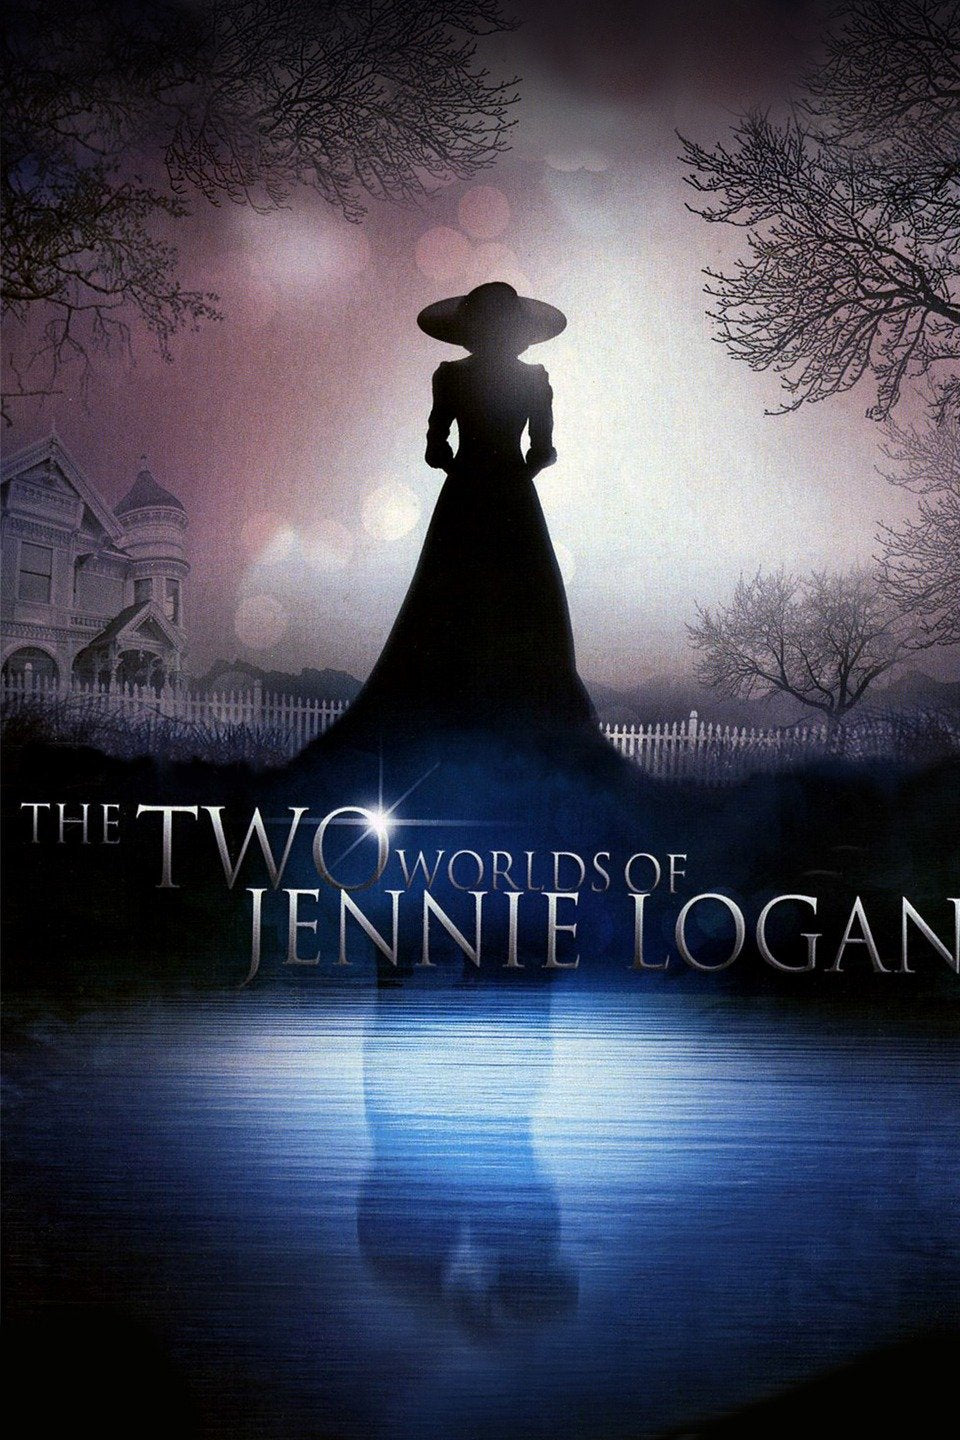 The Two Worlds of Jennie Logan Dvd (1979)